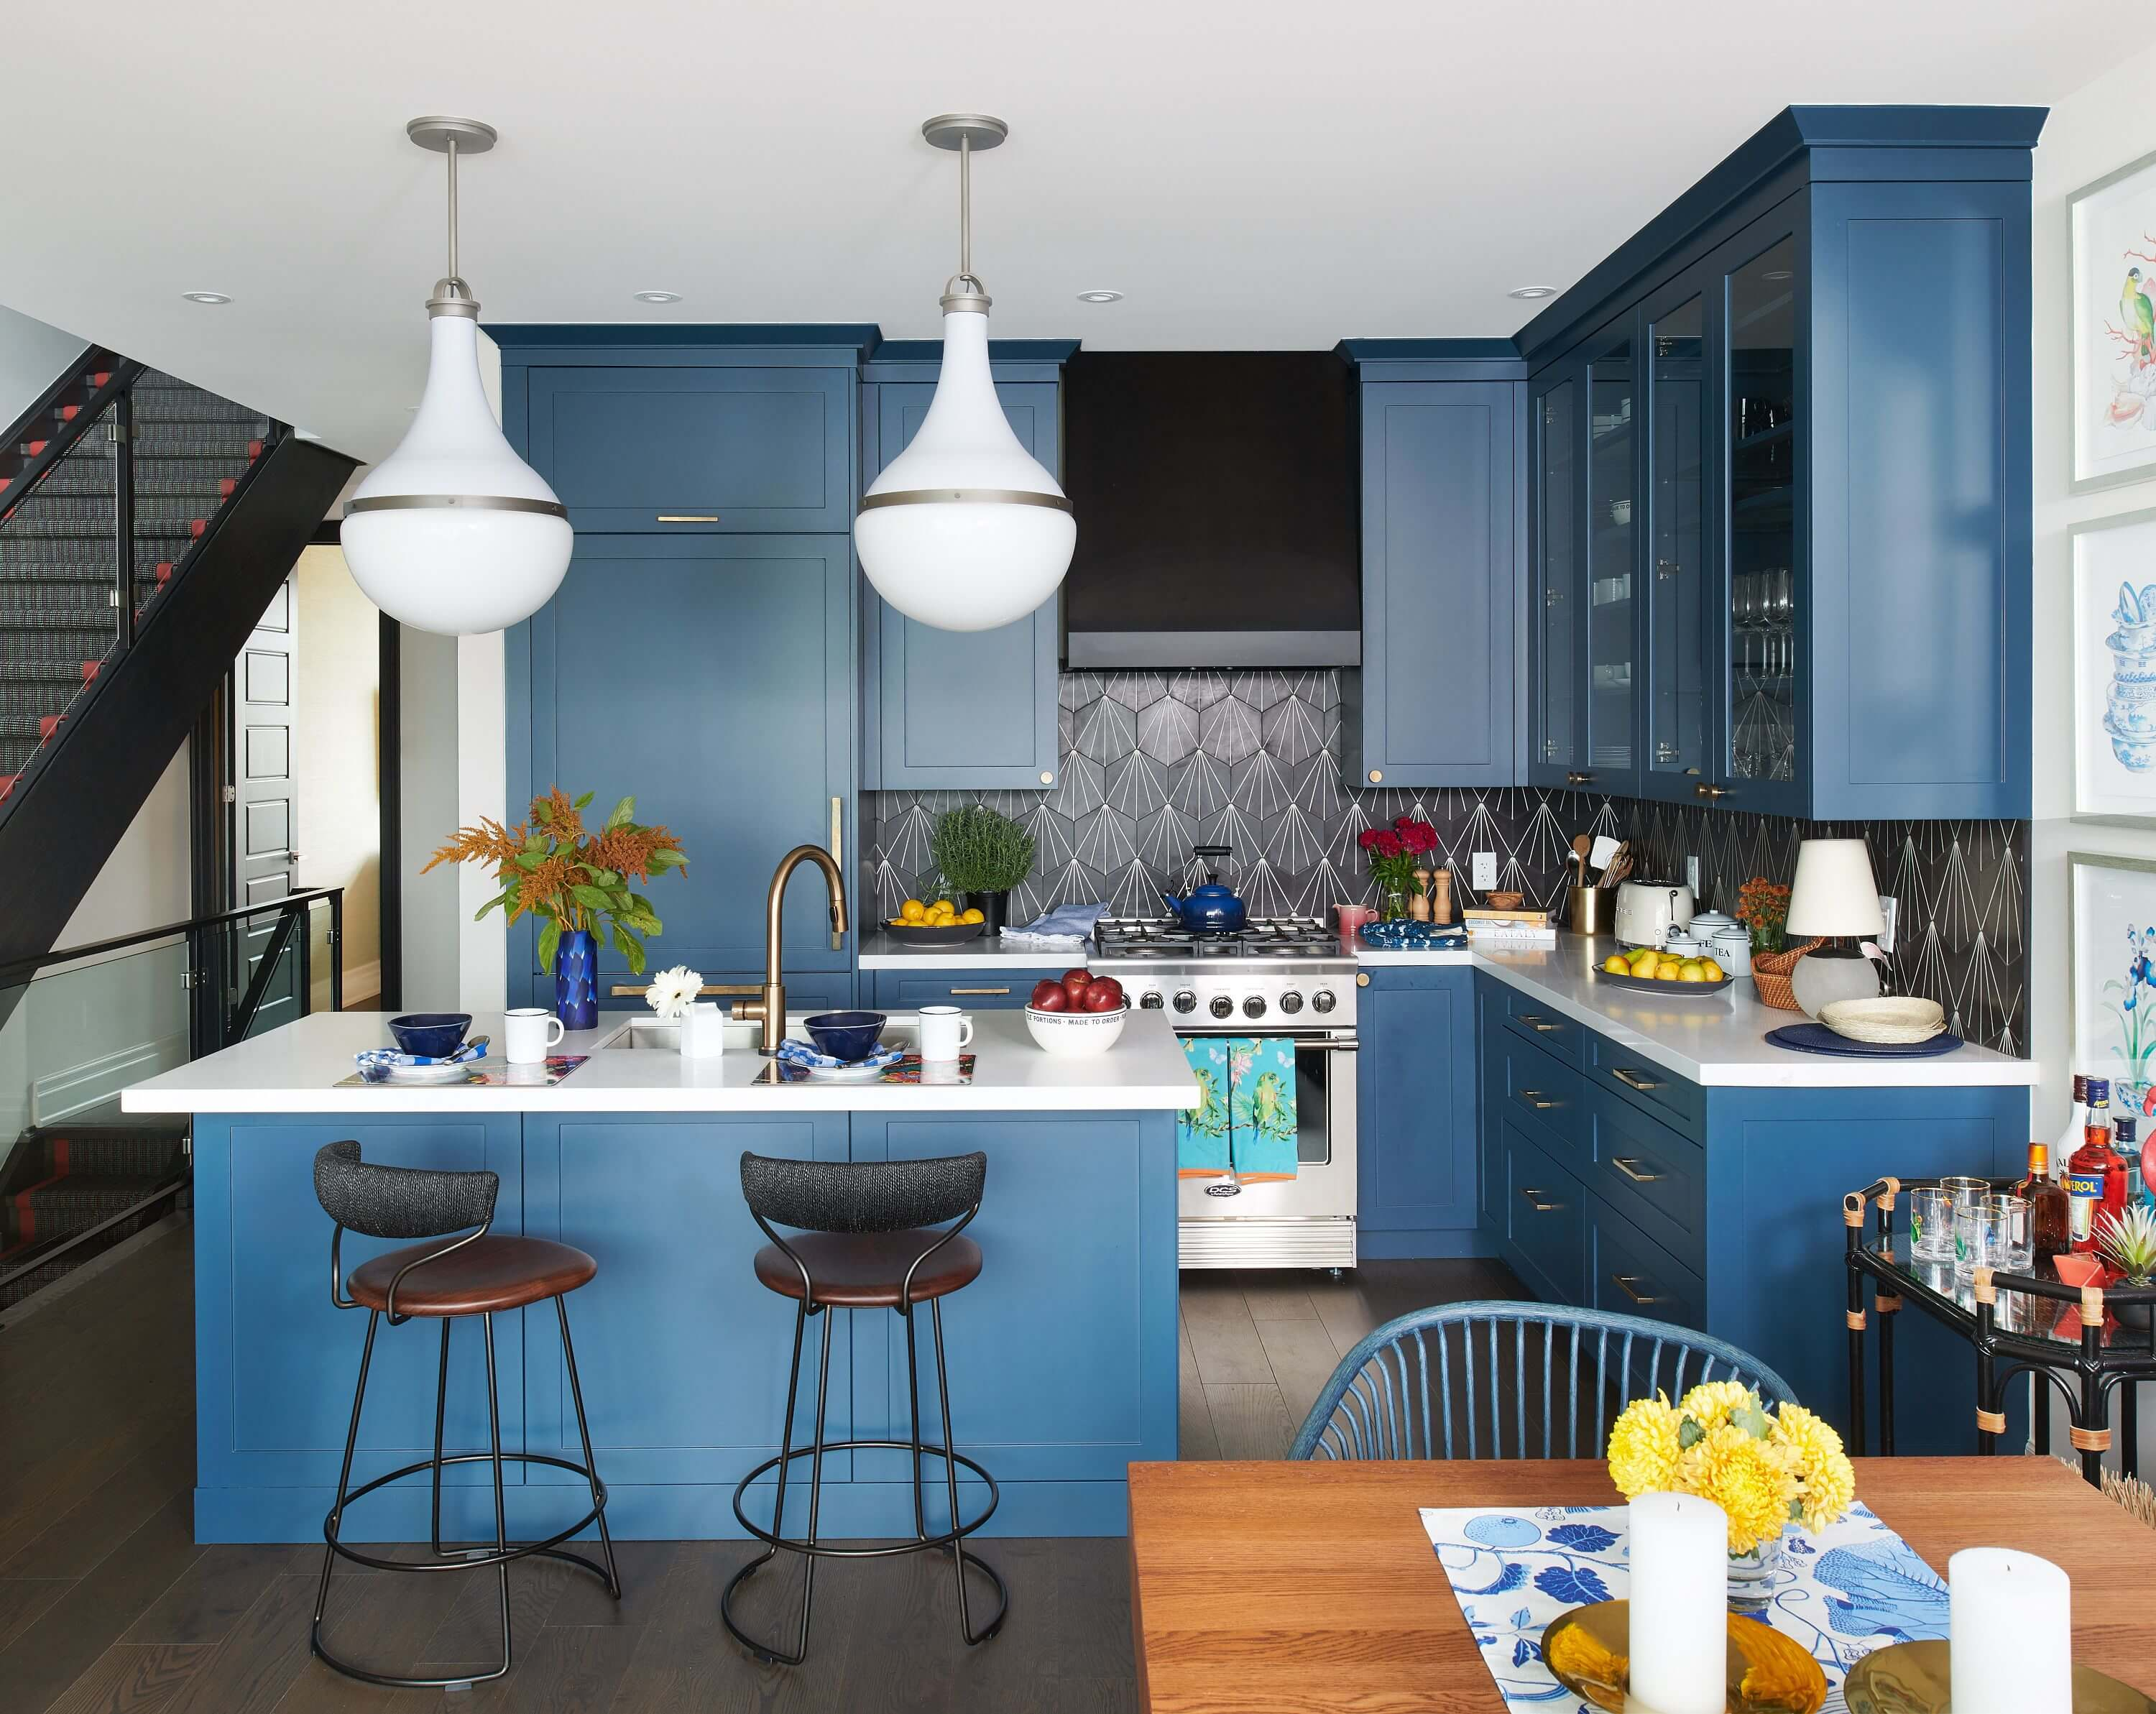 Kitchen Remodeling: Top 5 Trends To Consider In 2020